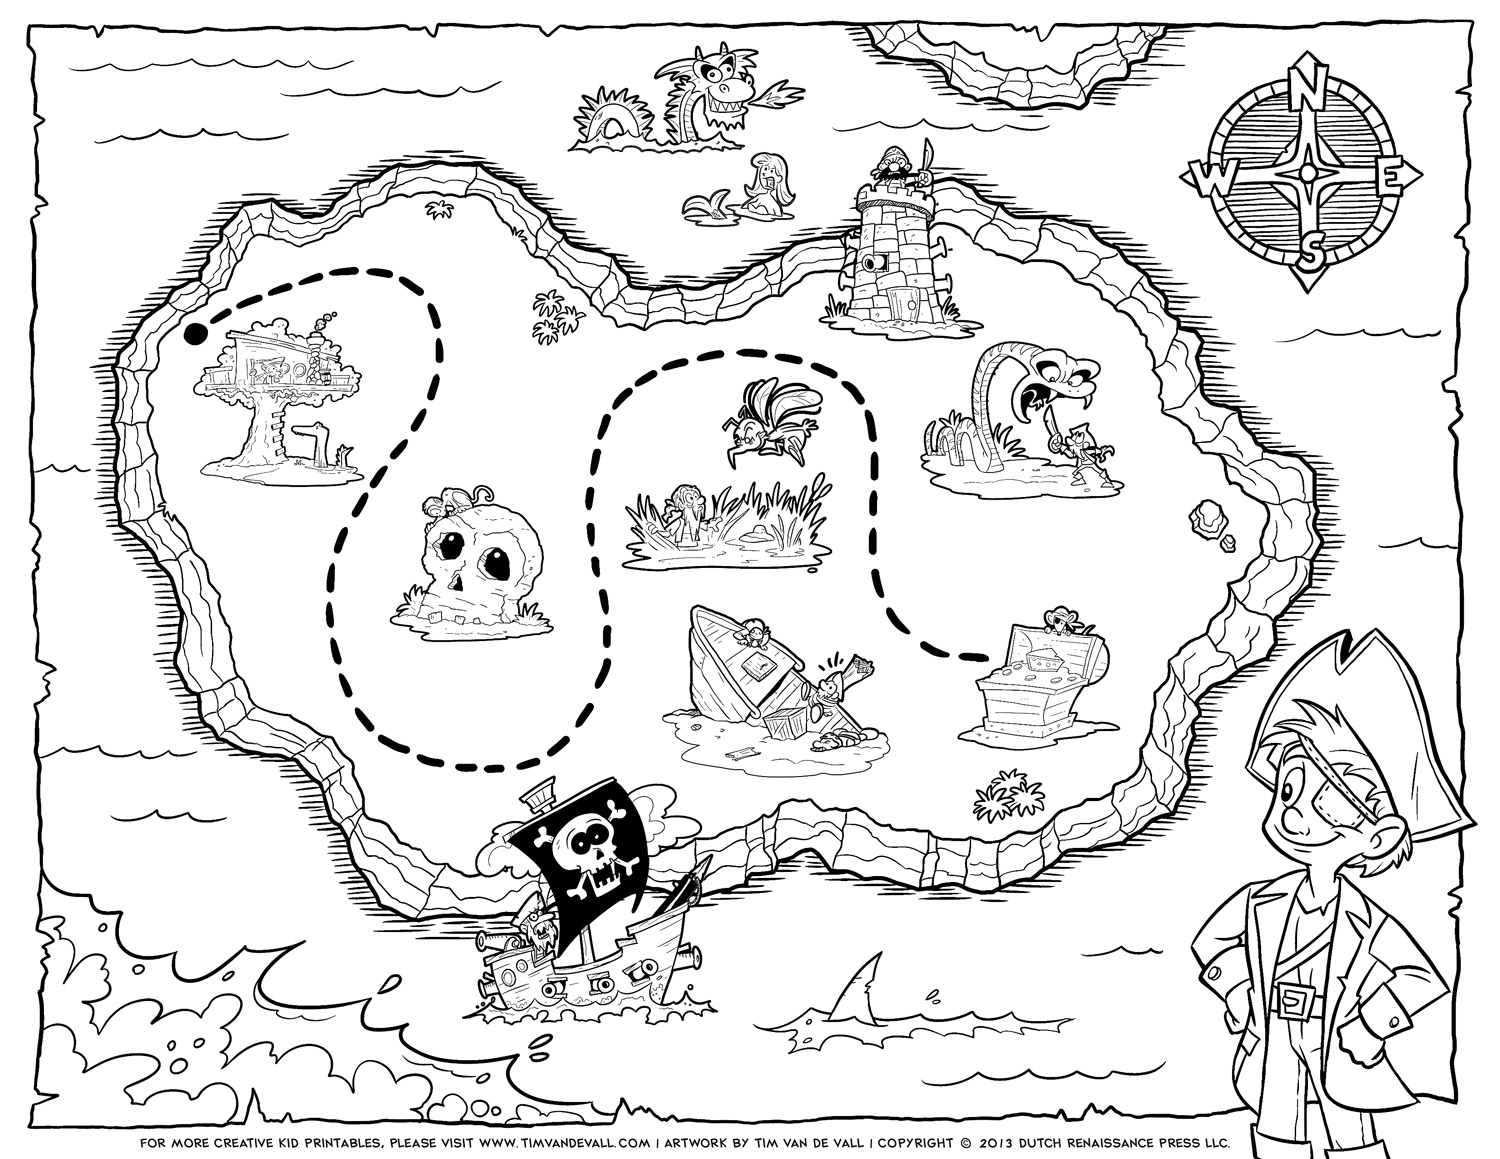 Pirate treasure coloring pages - photo#2